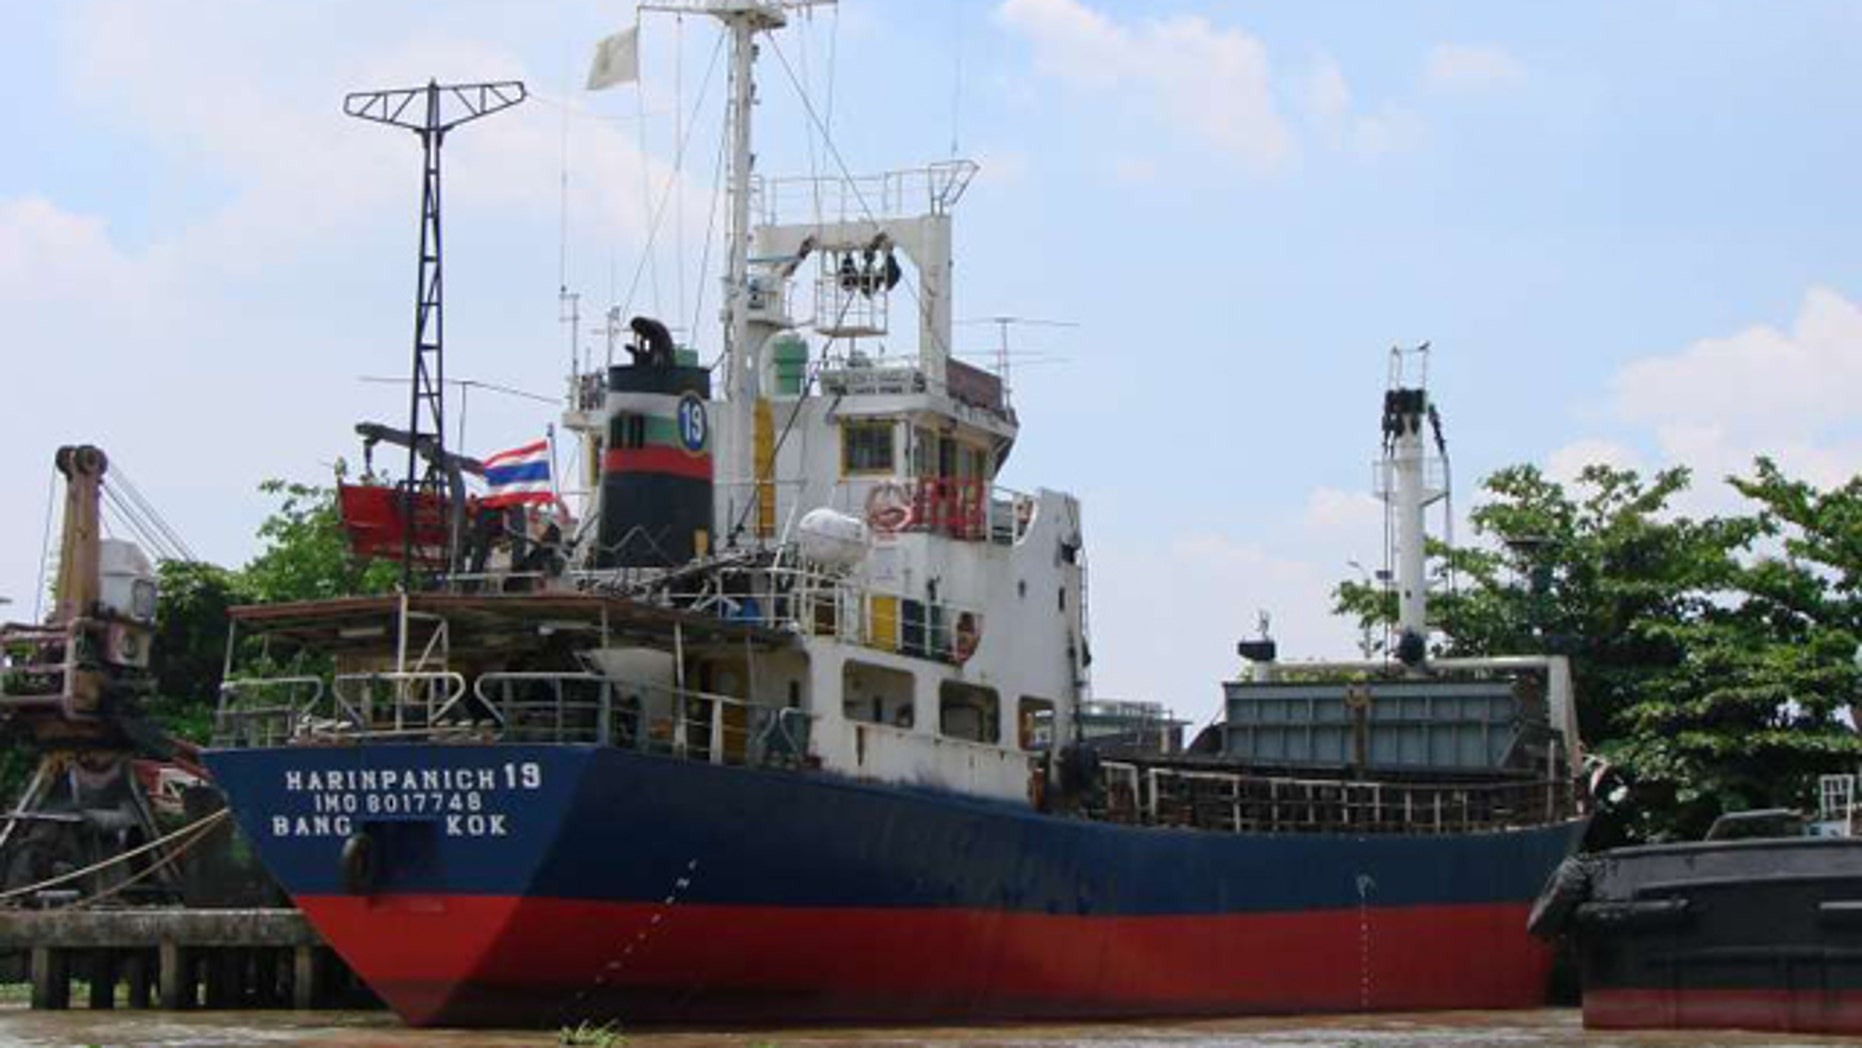 Shown here is the ship said to be approaching Canada with Tamil migrants on board. The photo is from 2008 when the ship was called Harin Panich 19. (Geir Vinnes/Shipspotting.com)